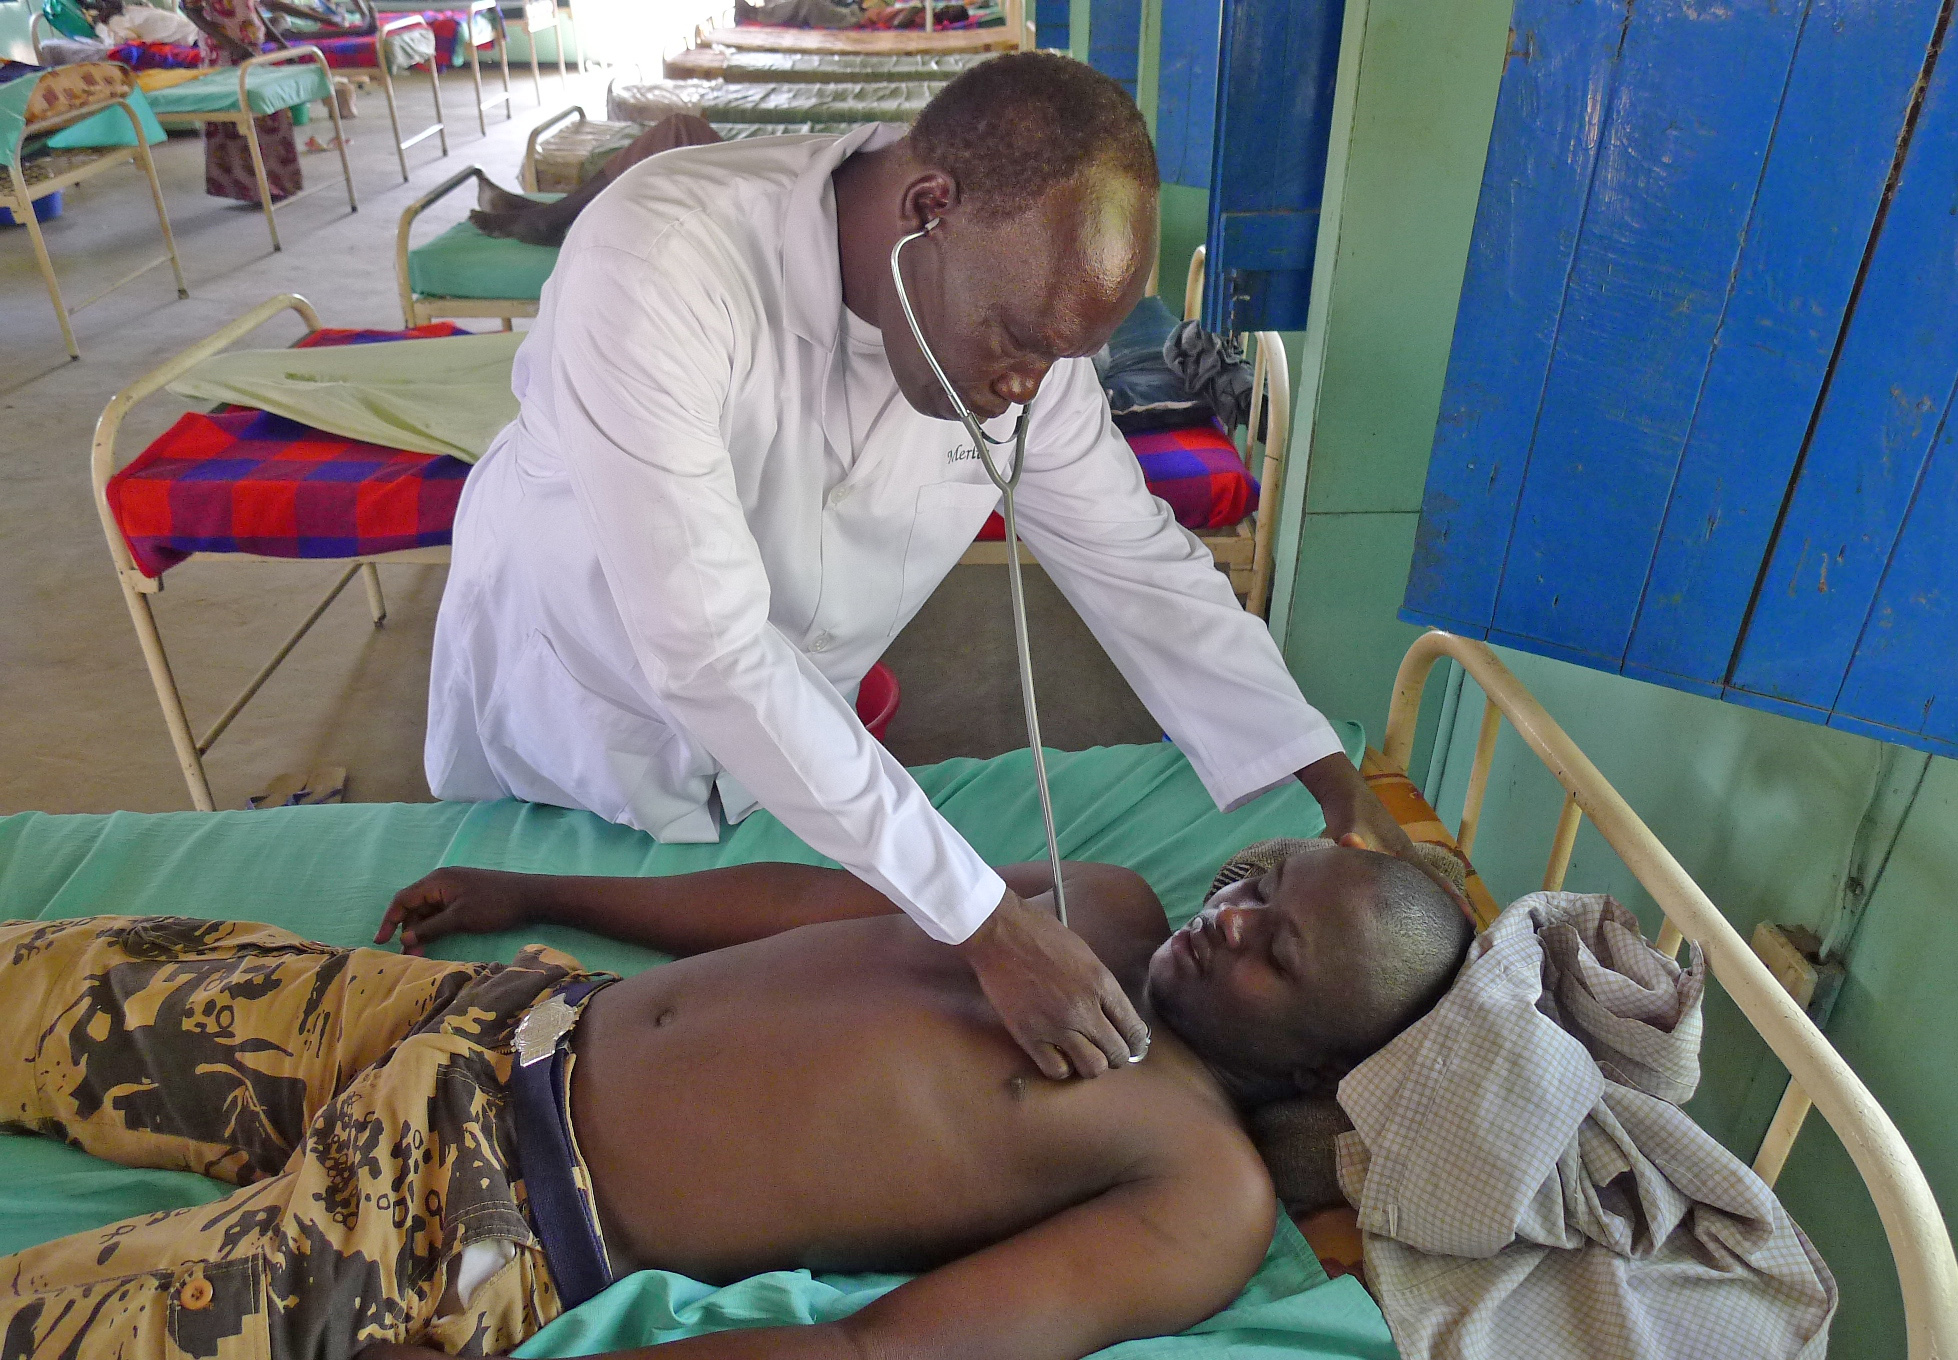 Elizeous Suror, Sleeping sickness program manager for MERLIN examines newly diagnosed patient Morgan Michael at Nimule hospital, Eastern Equatoria